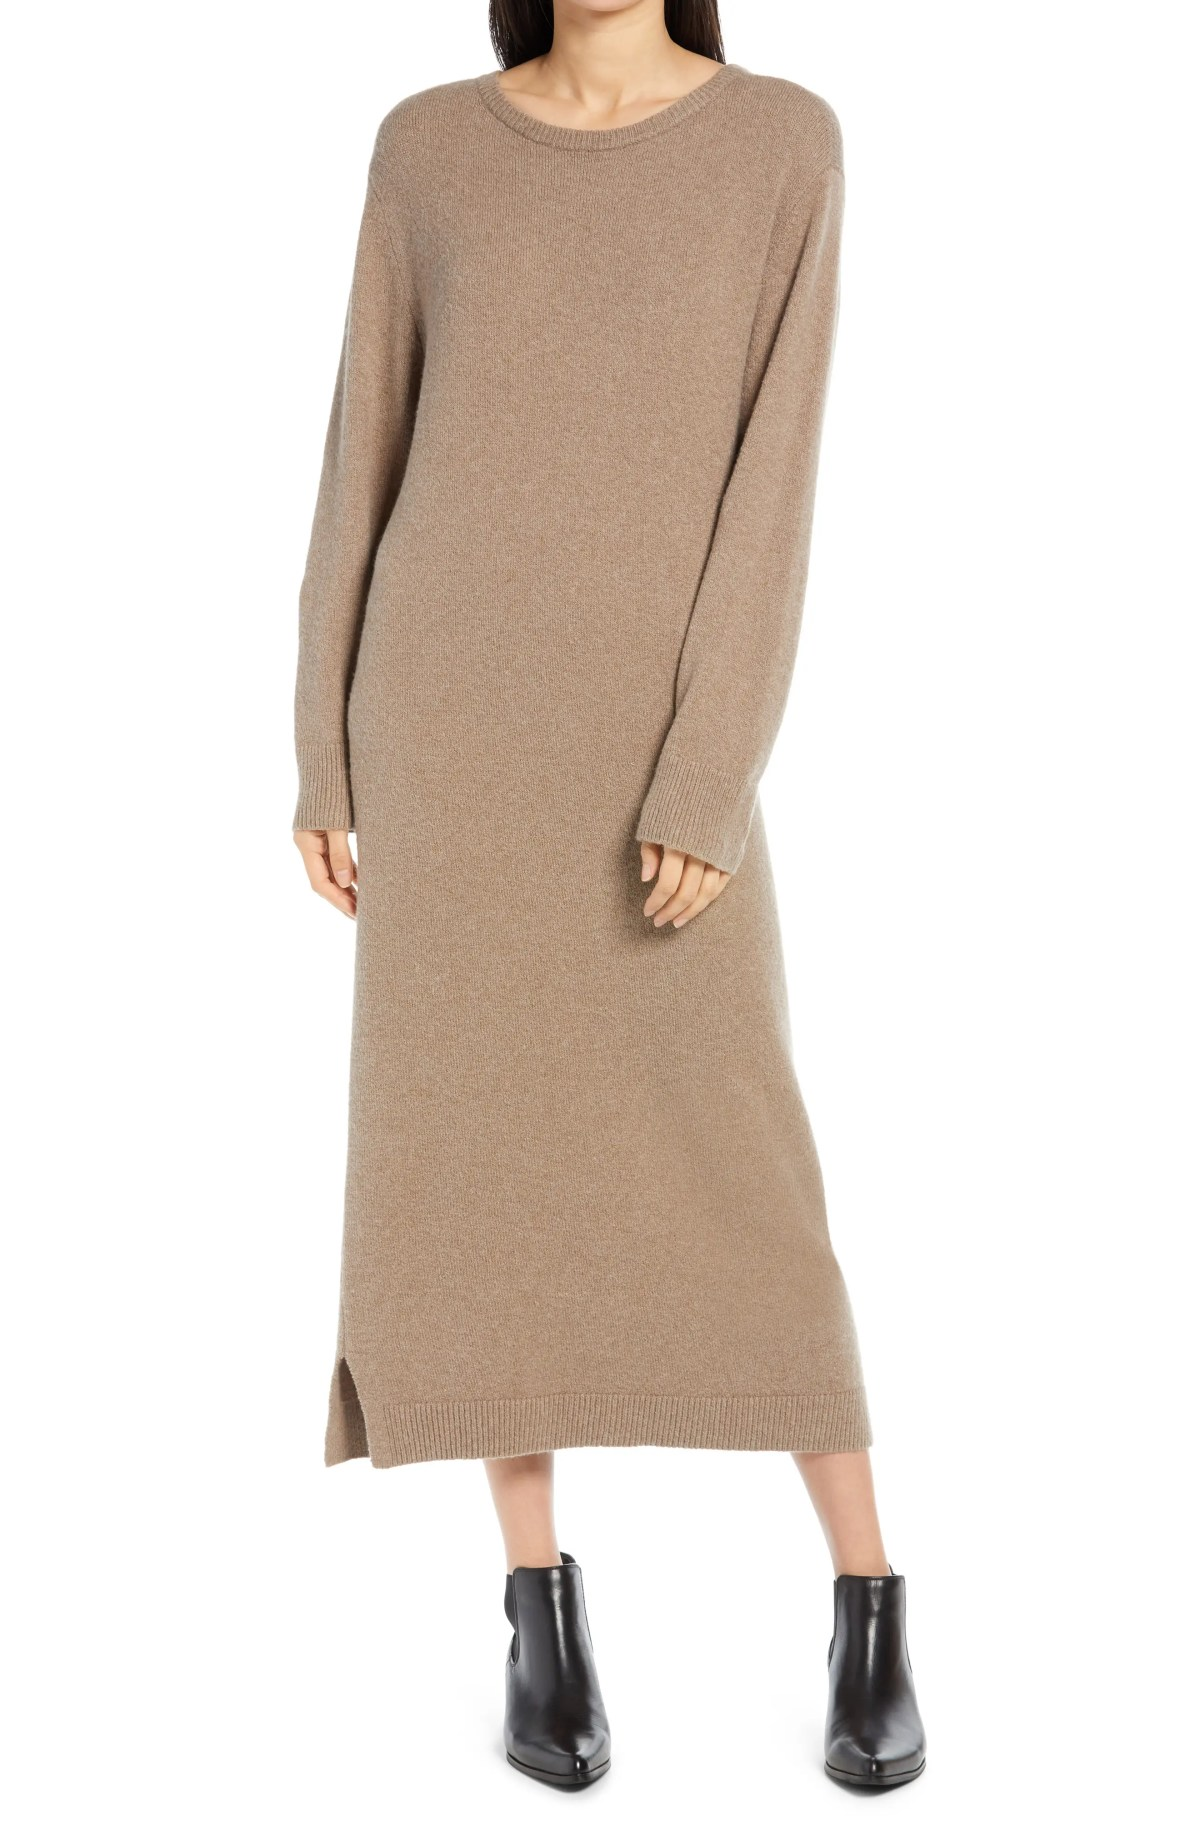 TREASURE & BOND Crewneck Long Sleeve Sweater Dress, Main, color, BROWN SHITAKE HEATHER